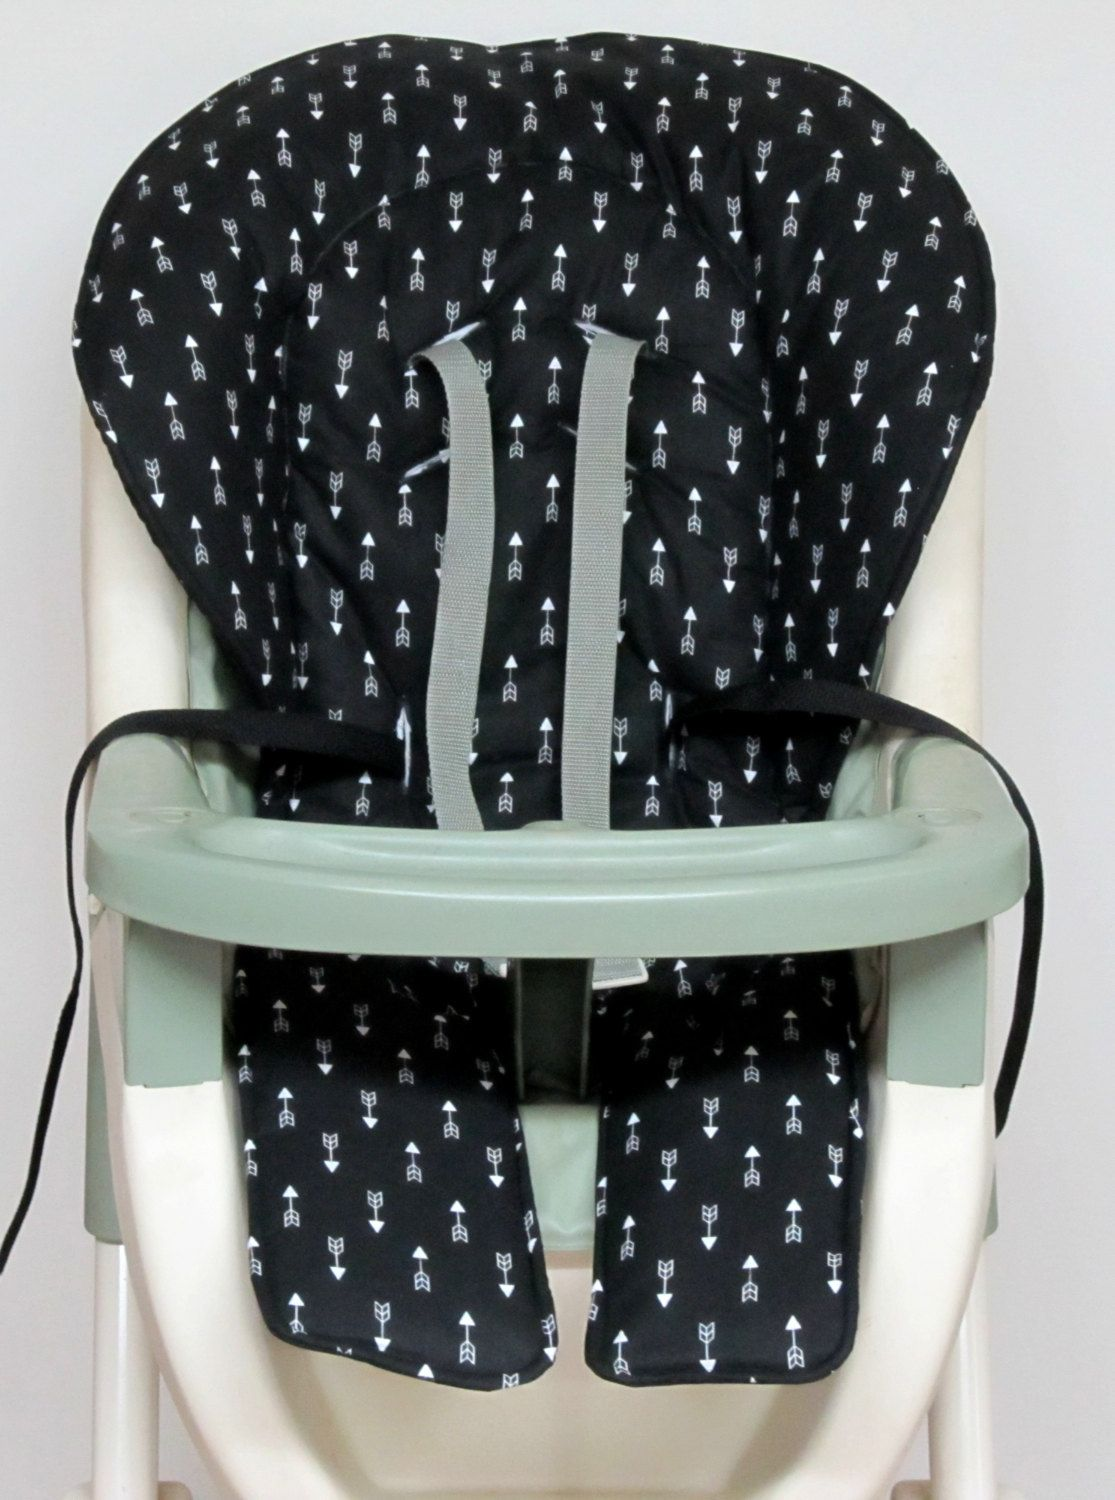 Graco highchair pad baby accessoryreplacement cover nursery – Etsy Chair Cushions